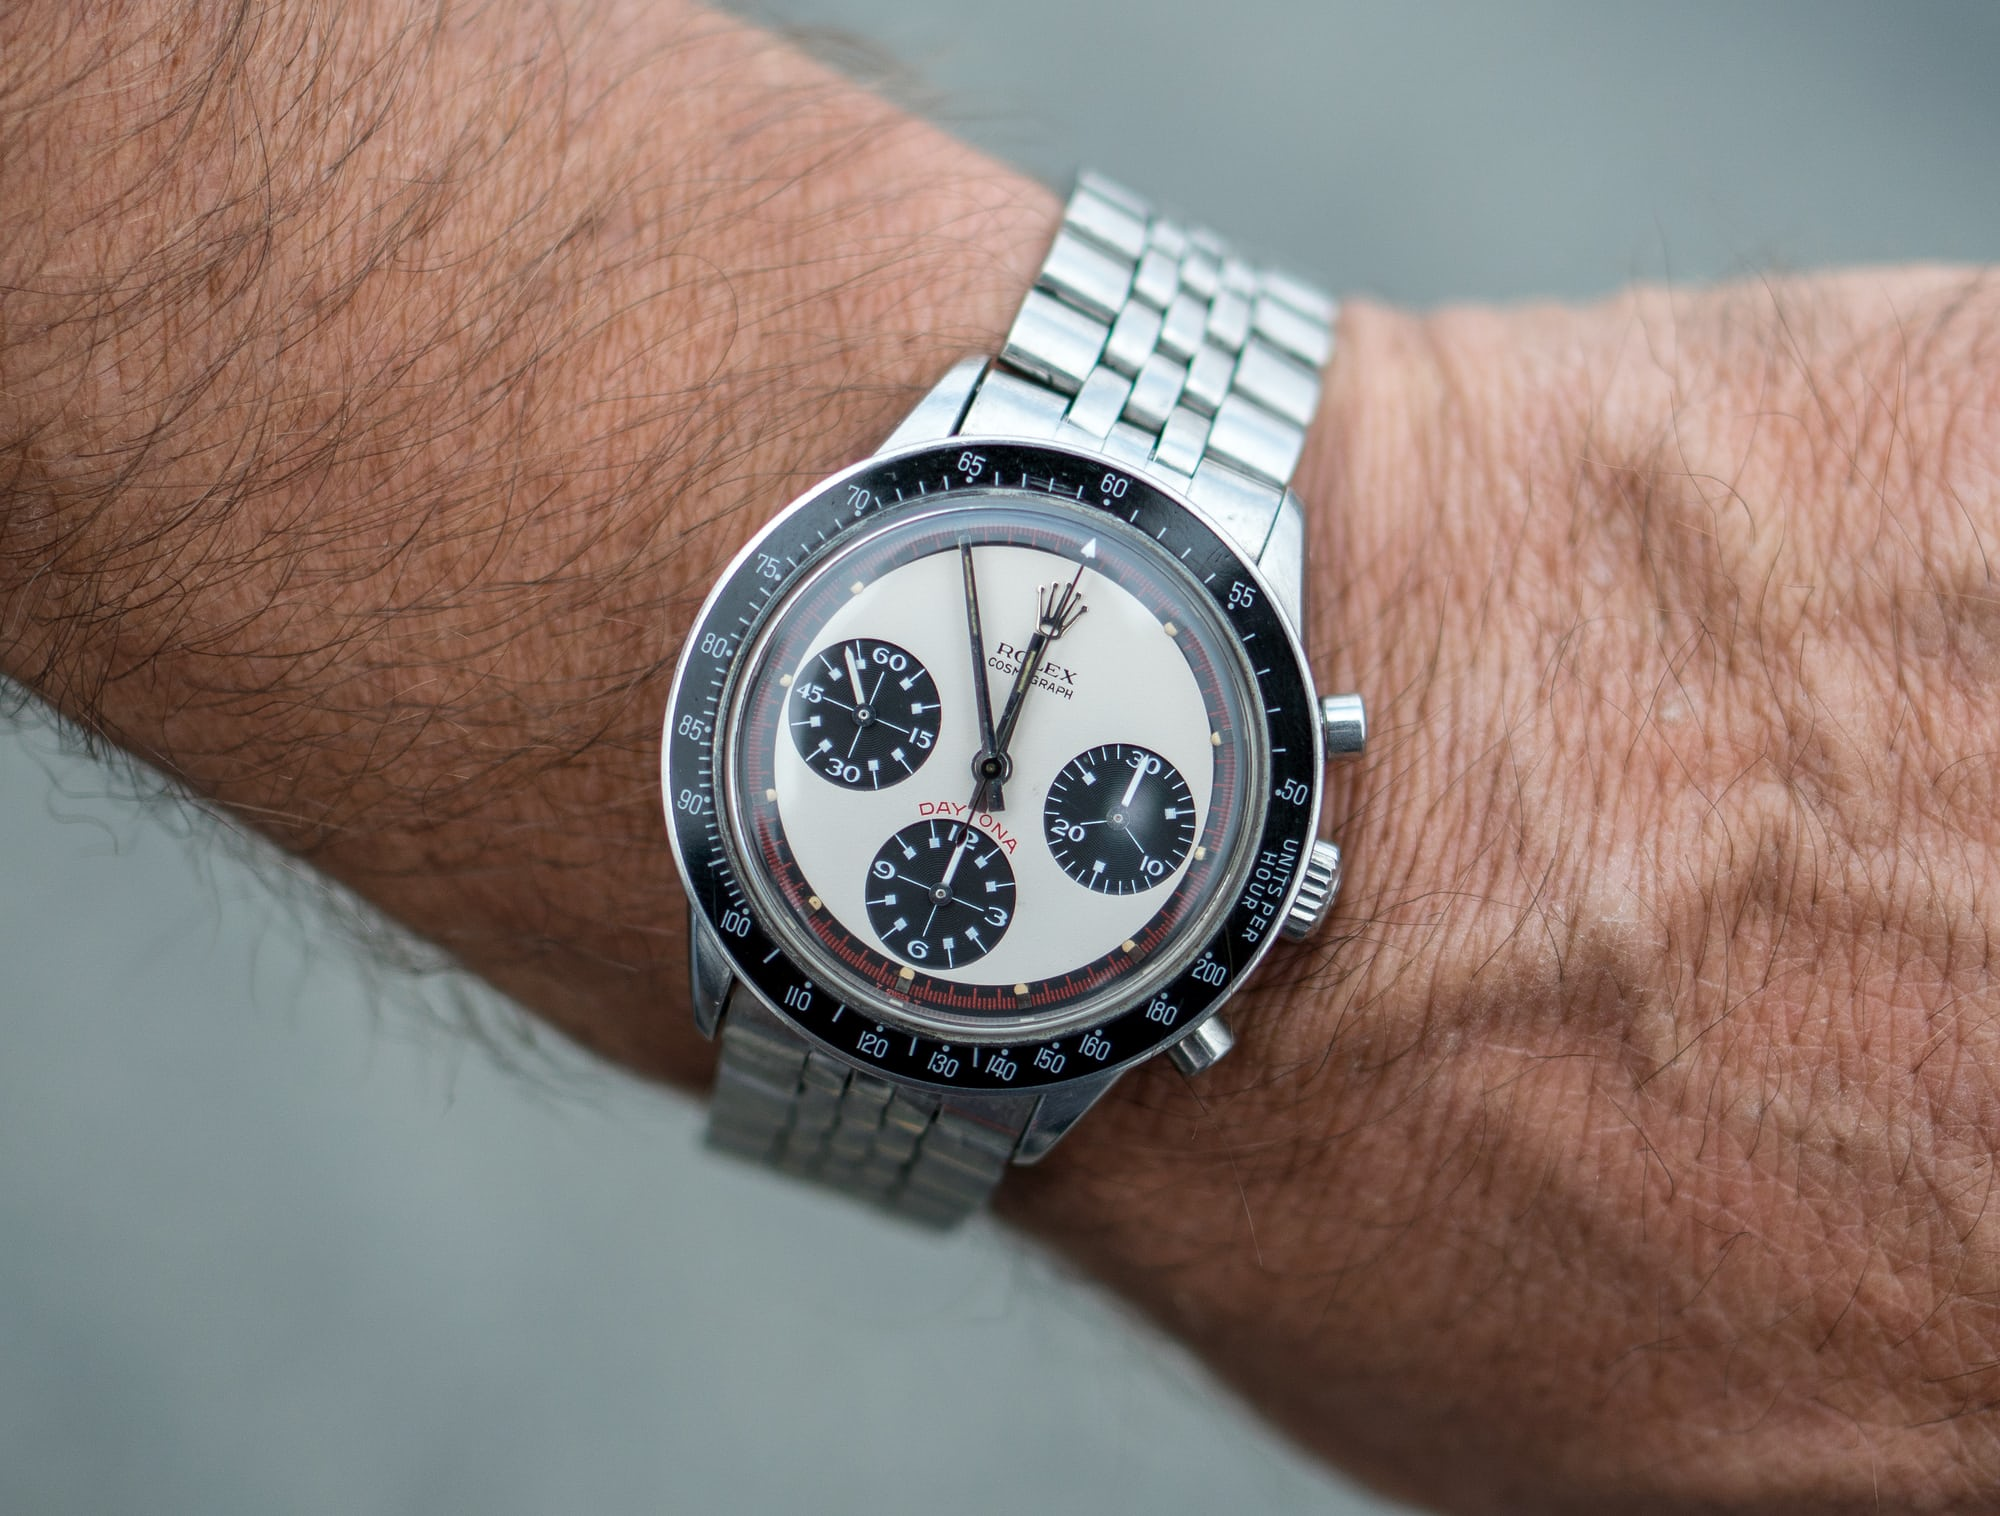 Photo Report: Car And Watch Spotting At Monterey Car Week 2017 Photo Report: Car And Watch Spotting At Monterey Car Week 2017 Monterey Car Week 2017 Watch Spotting 9